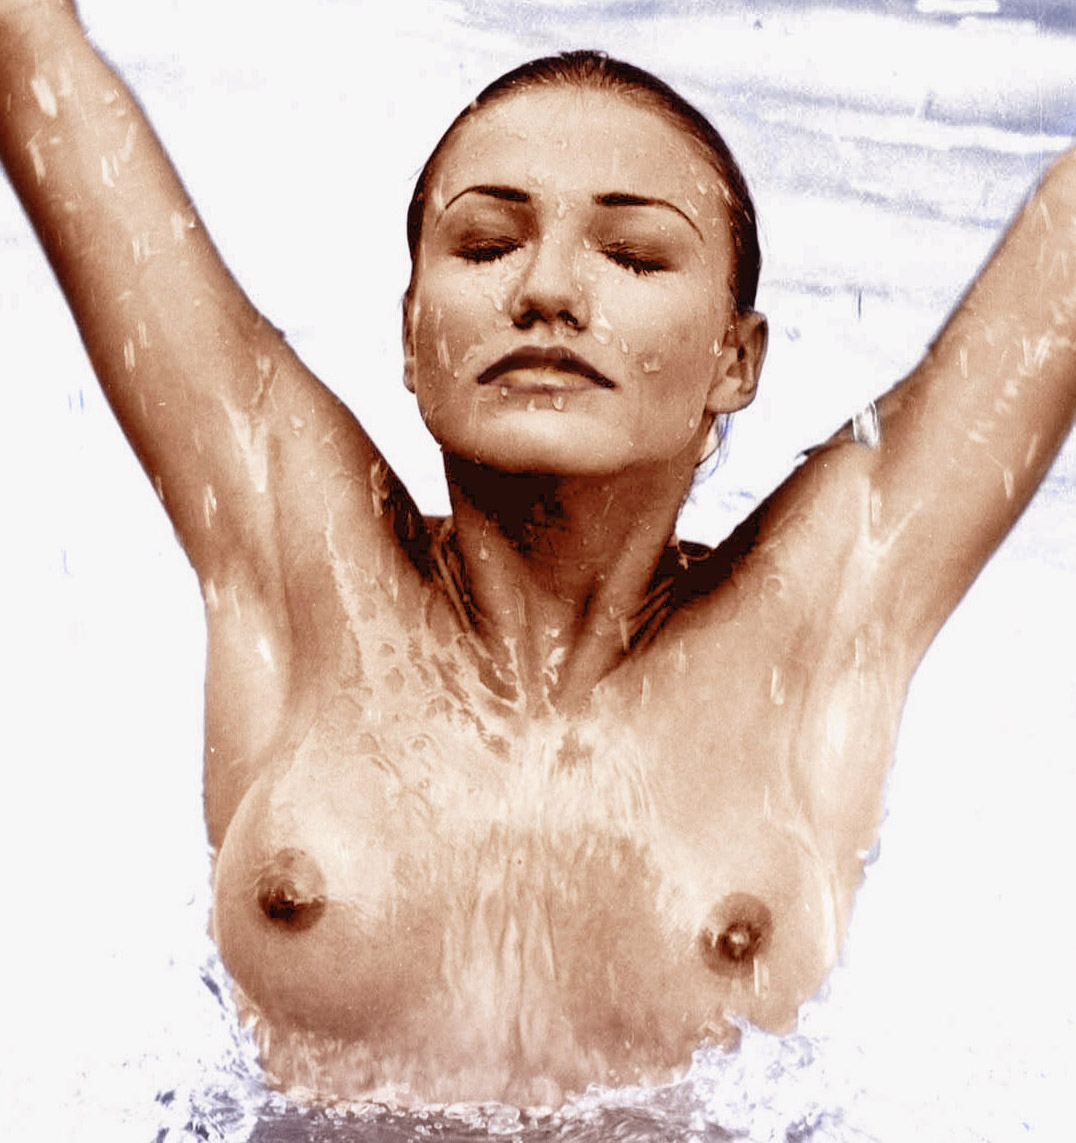 Celebrity Nude And Famous Cameron Diaz